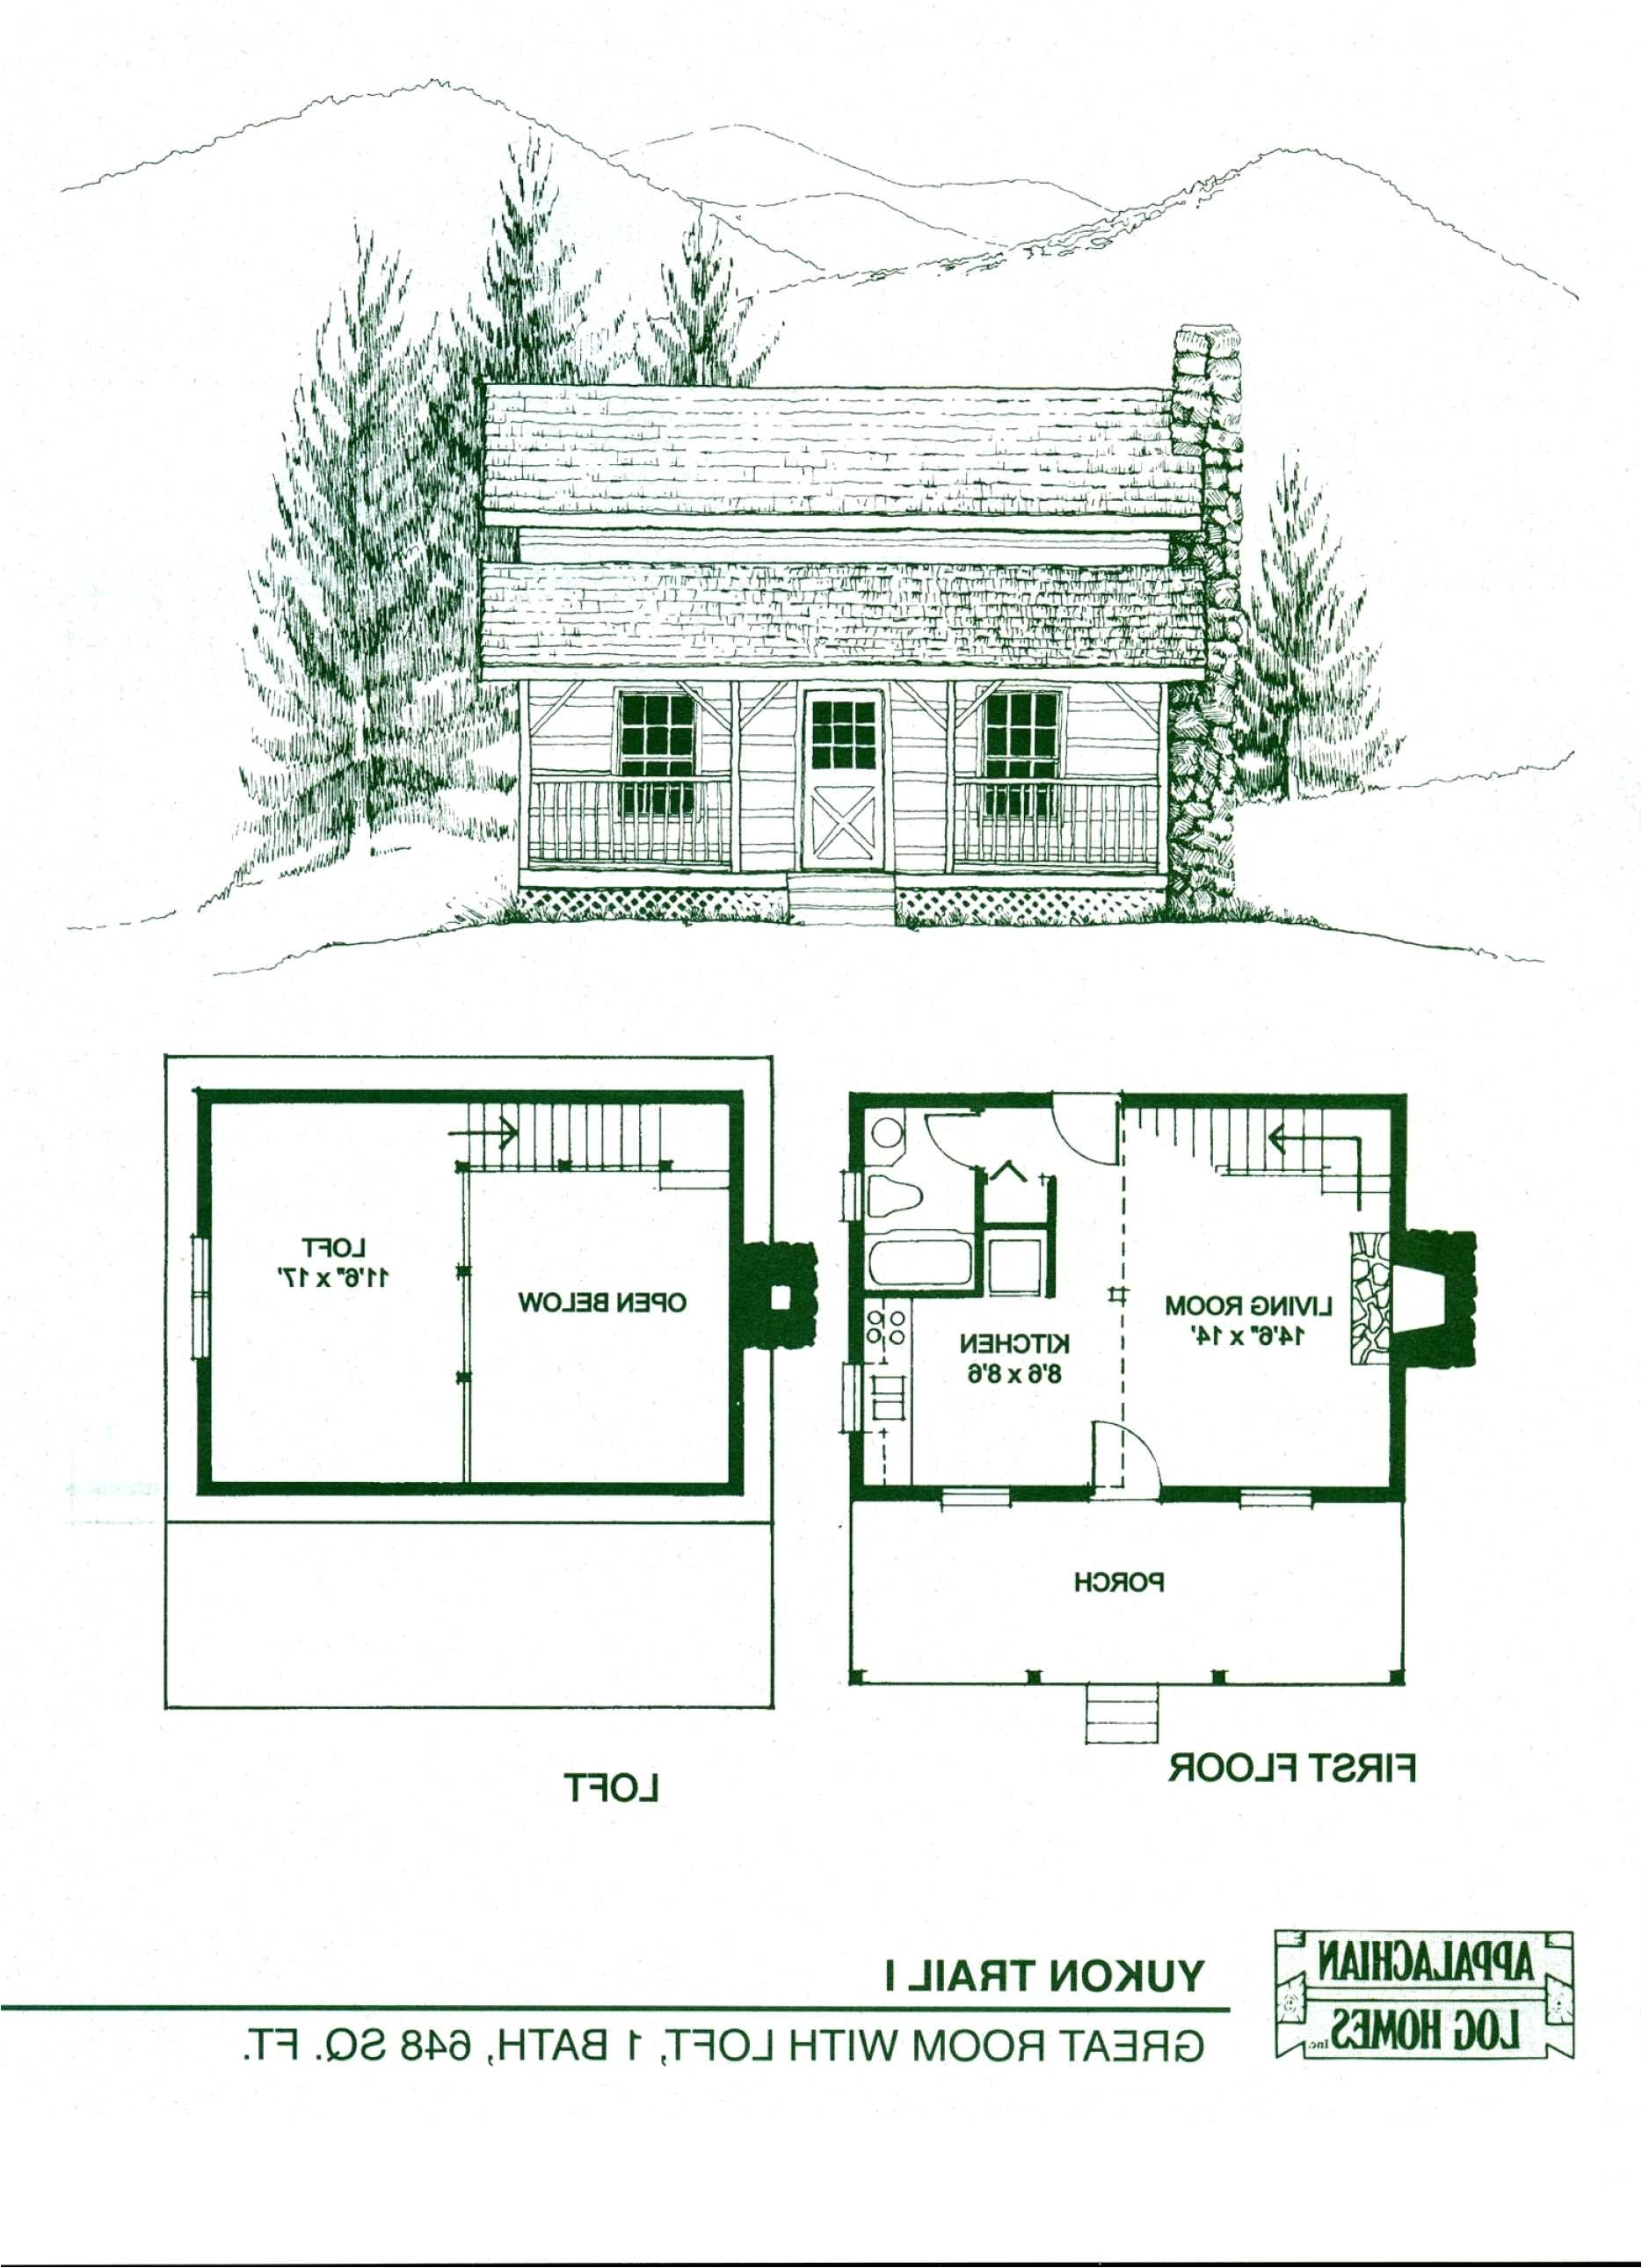 32x32 house plans or small cabin floor plans fresh floor plans small hunting cabins 13 2